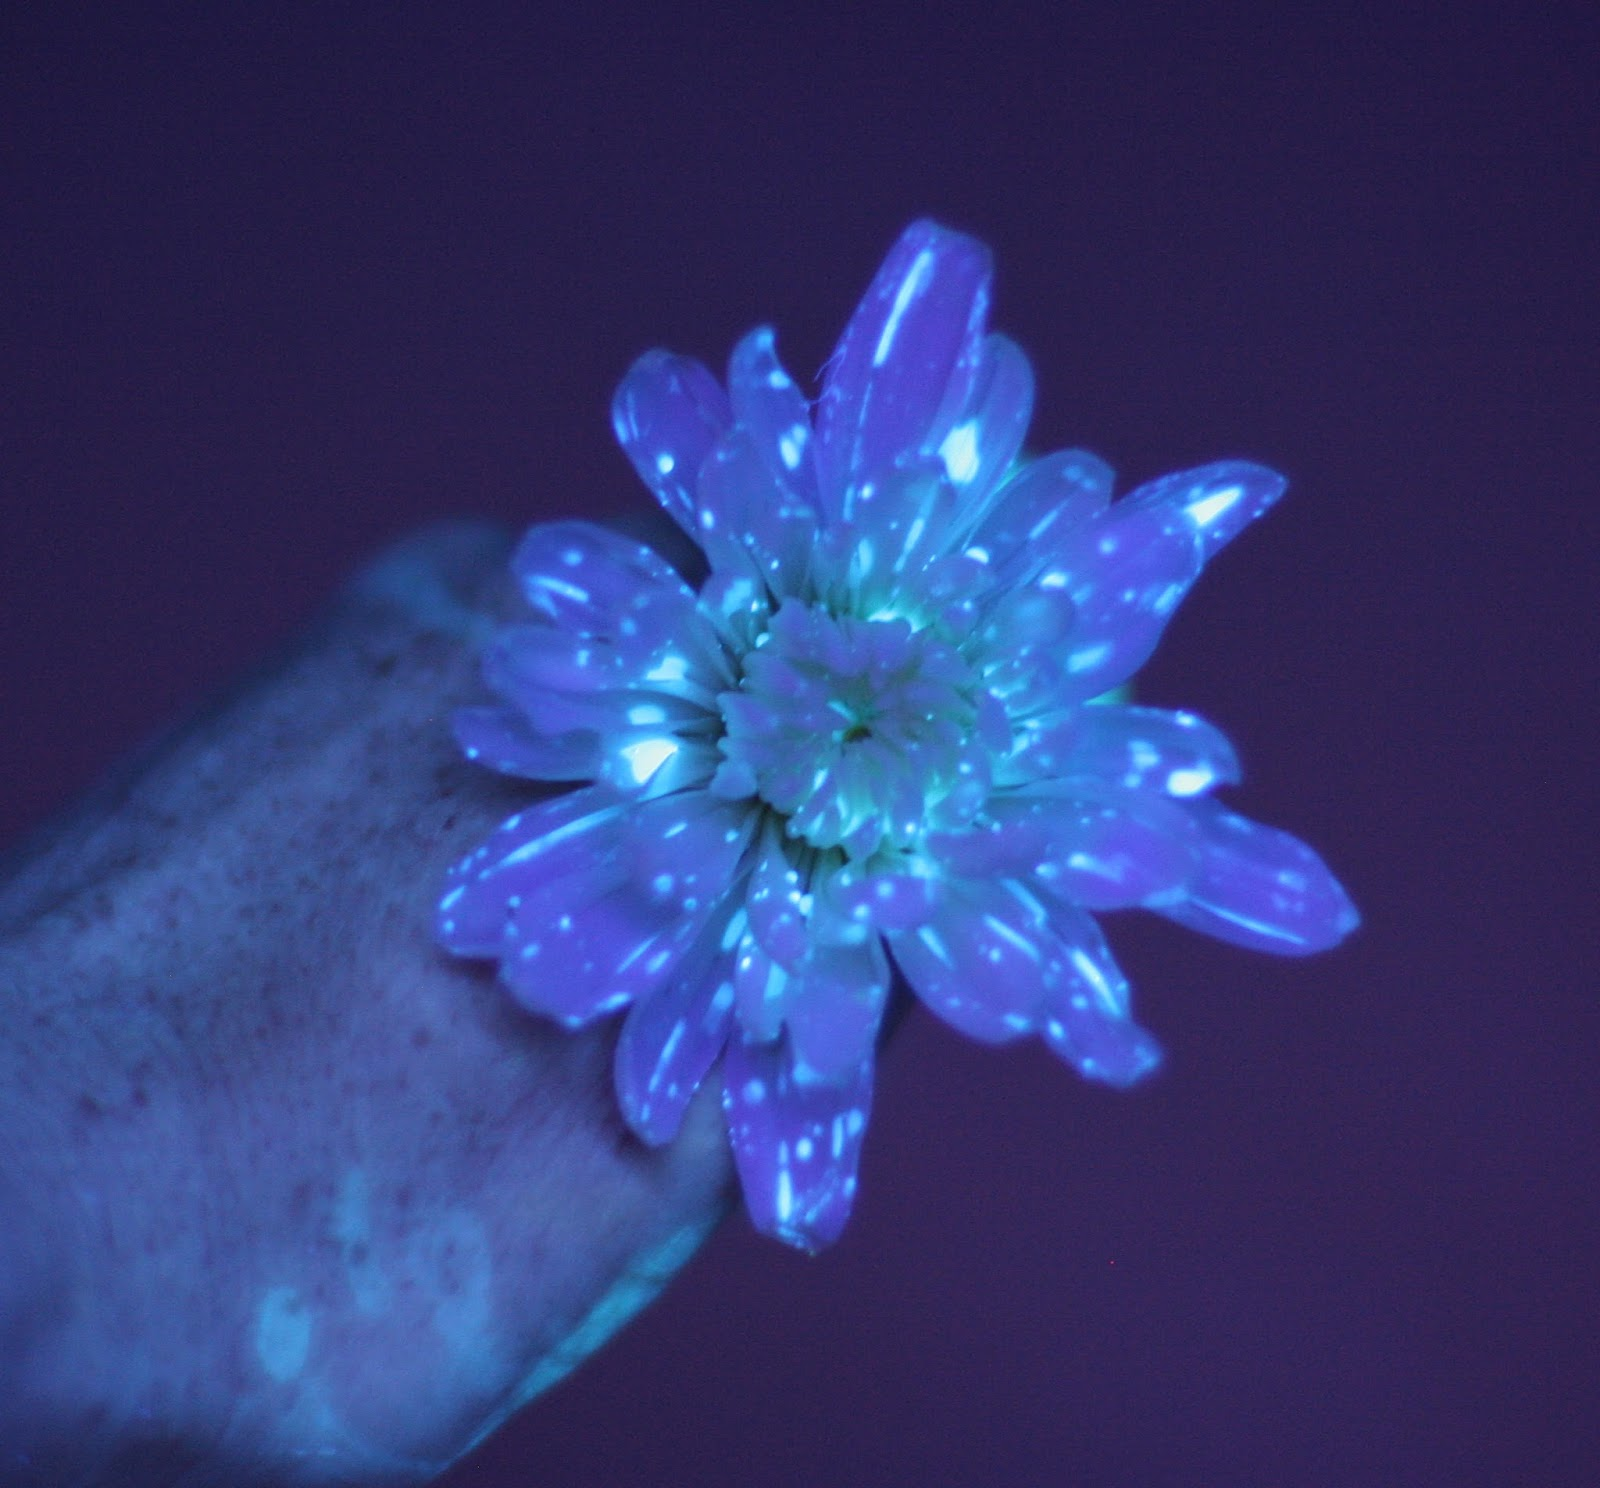 Flower Science Experiment for Kids DIY Glowing Flowers